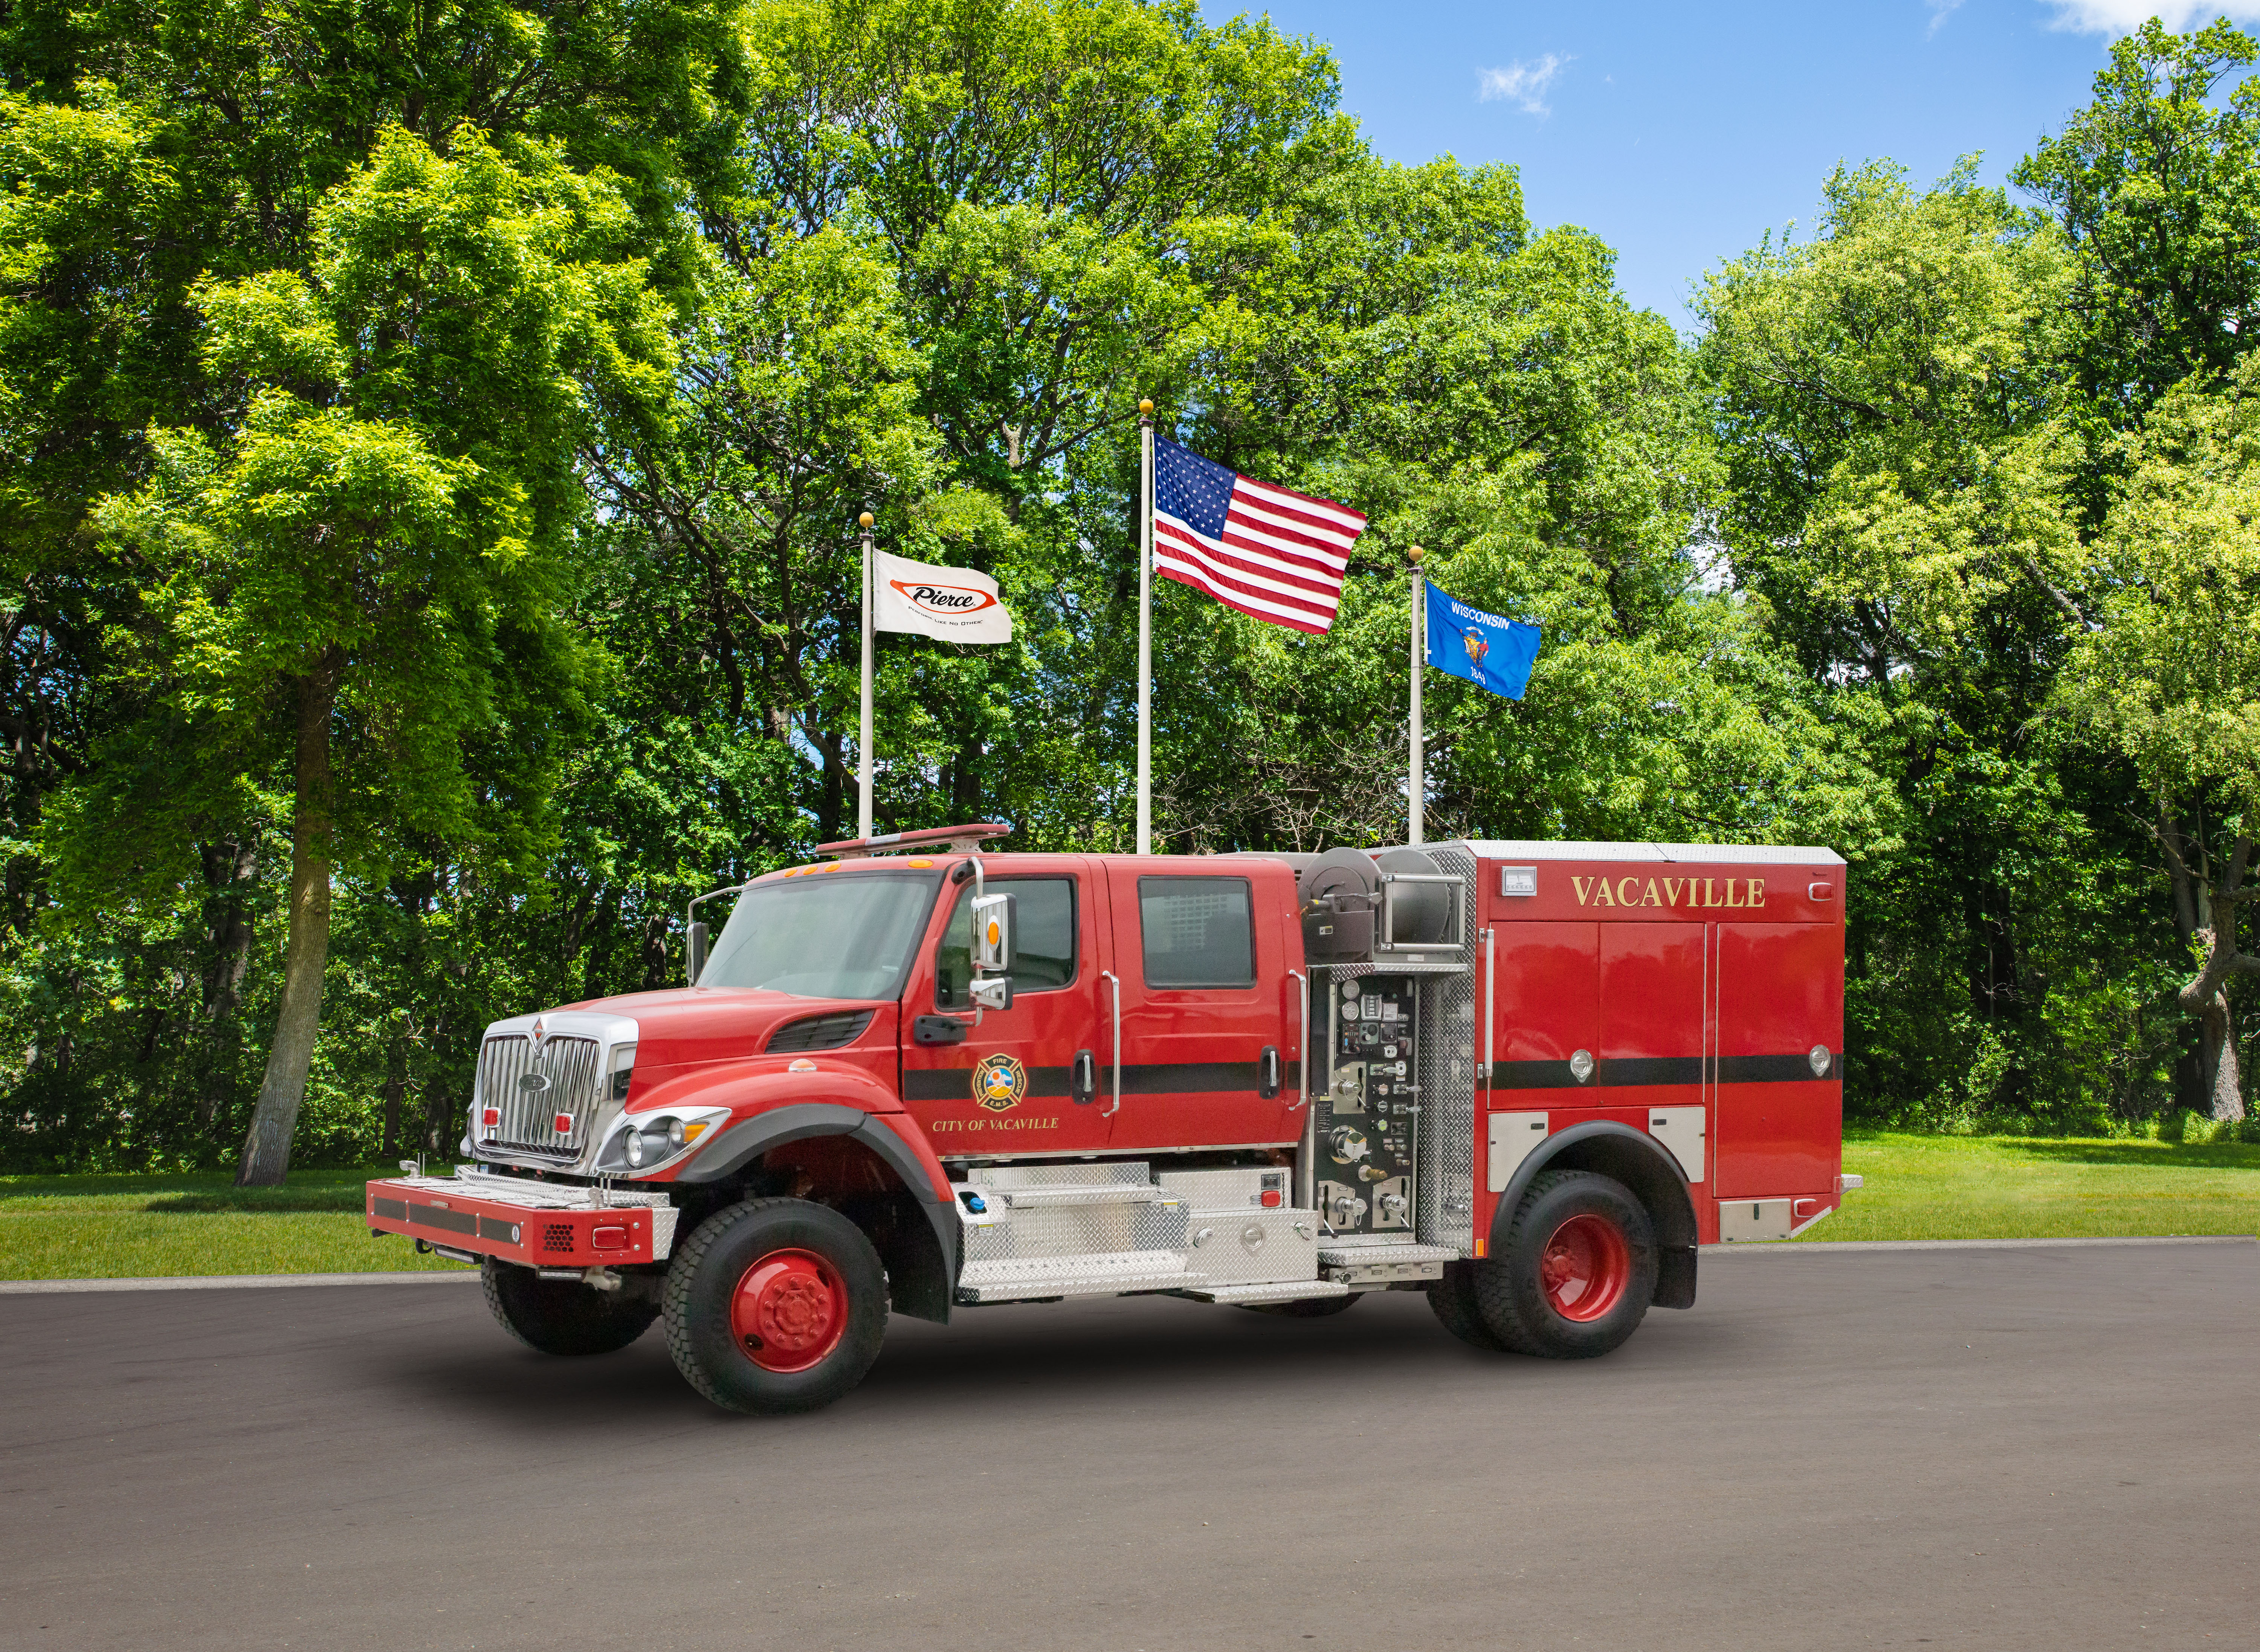 Vacaville Fire Department - Pumper